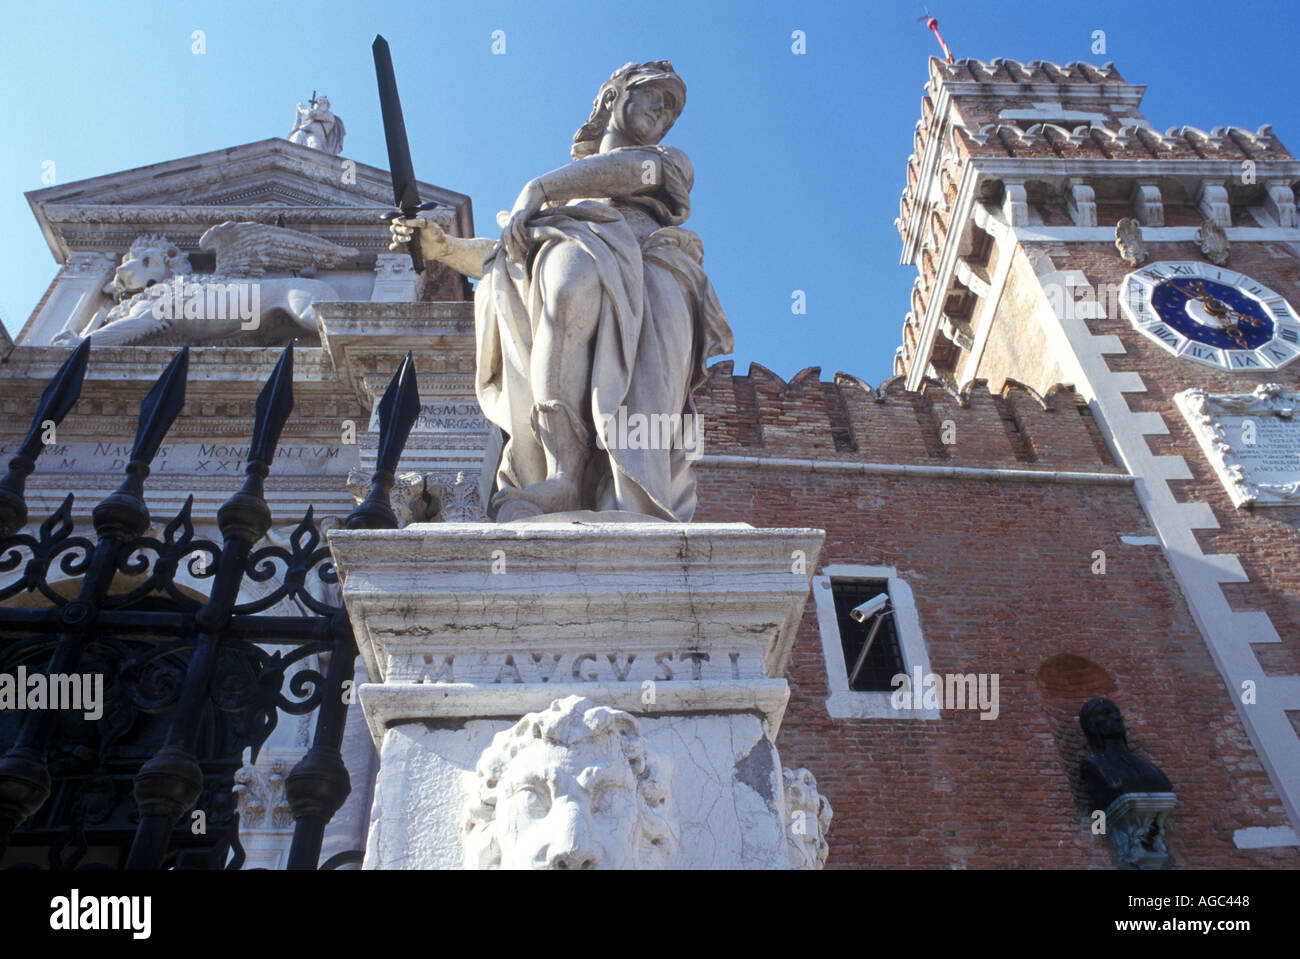 Statue outside the Castello in Venice Arsenale Italy - Stock Image